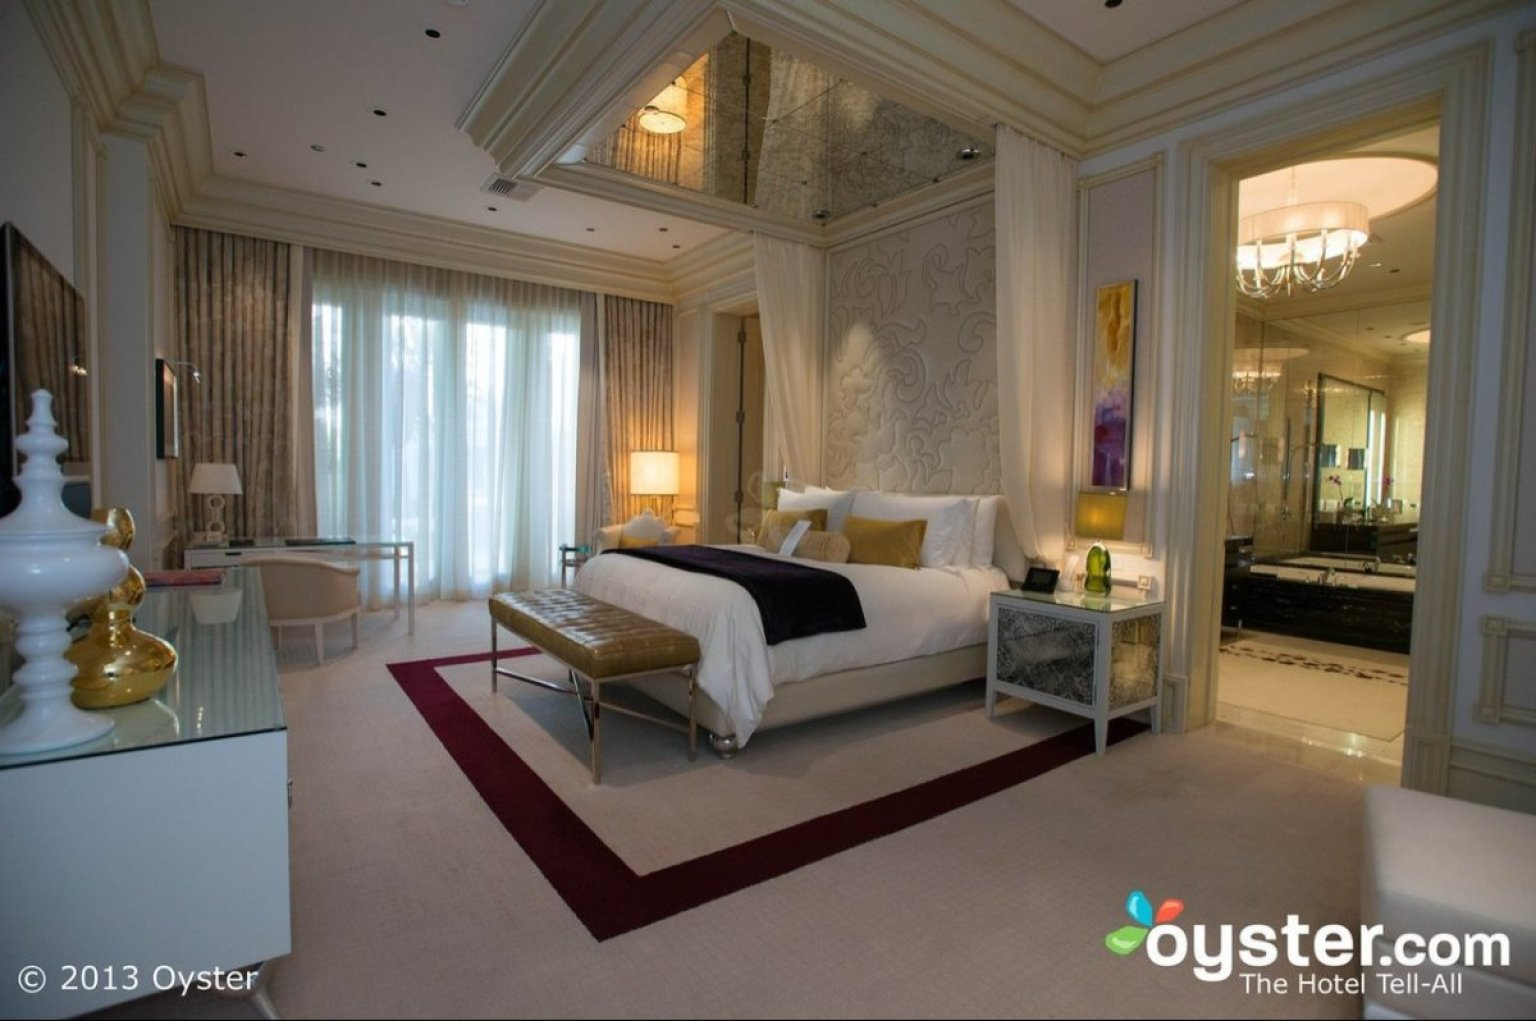 5 of the most uber luxurious suites in las vegas huffpost for Most luxurious hotels